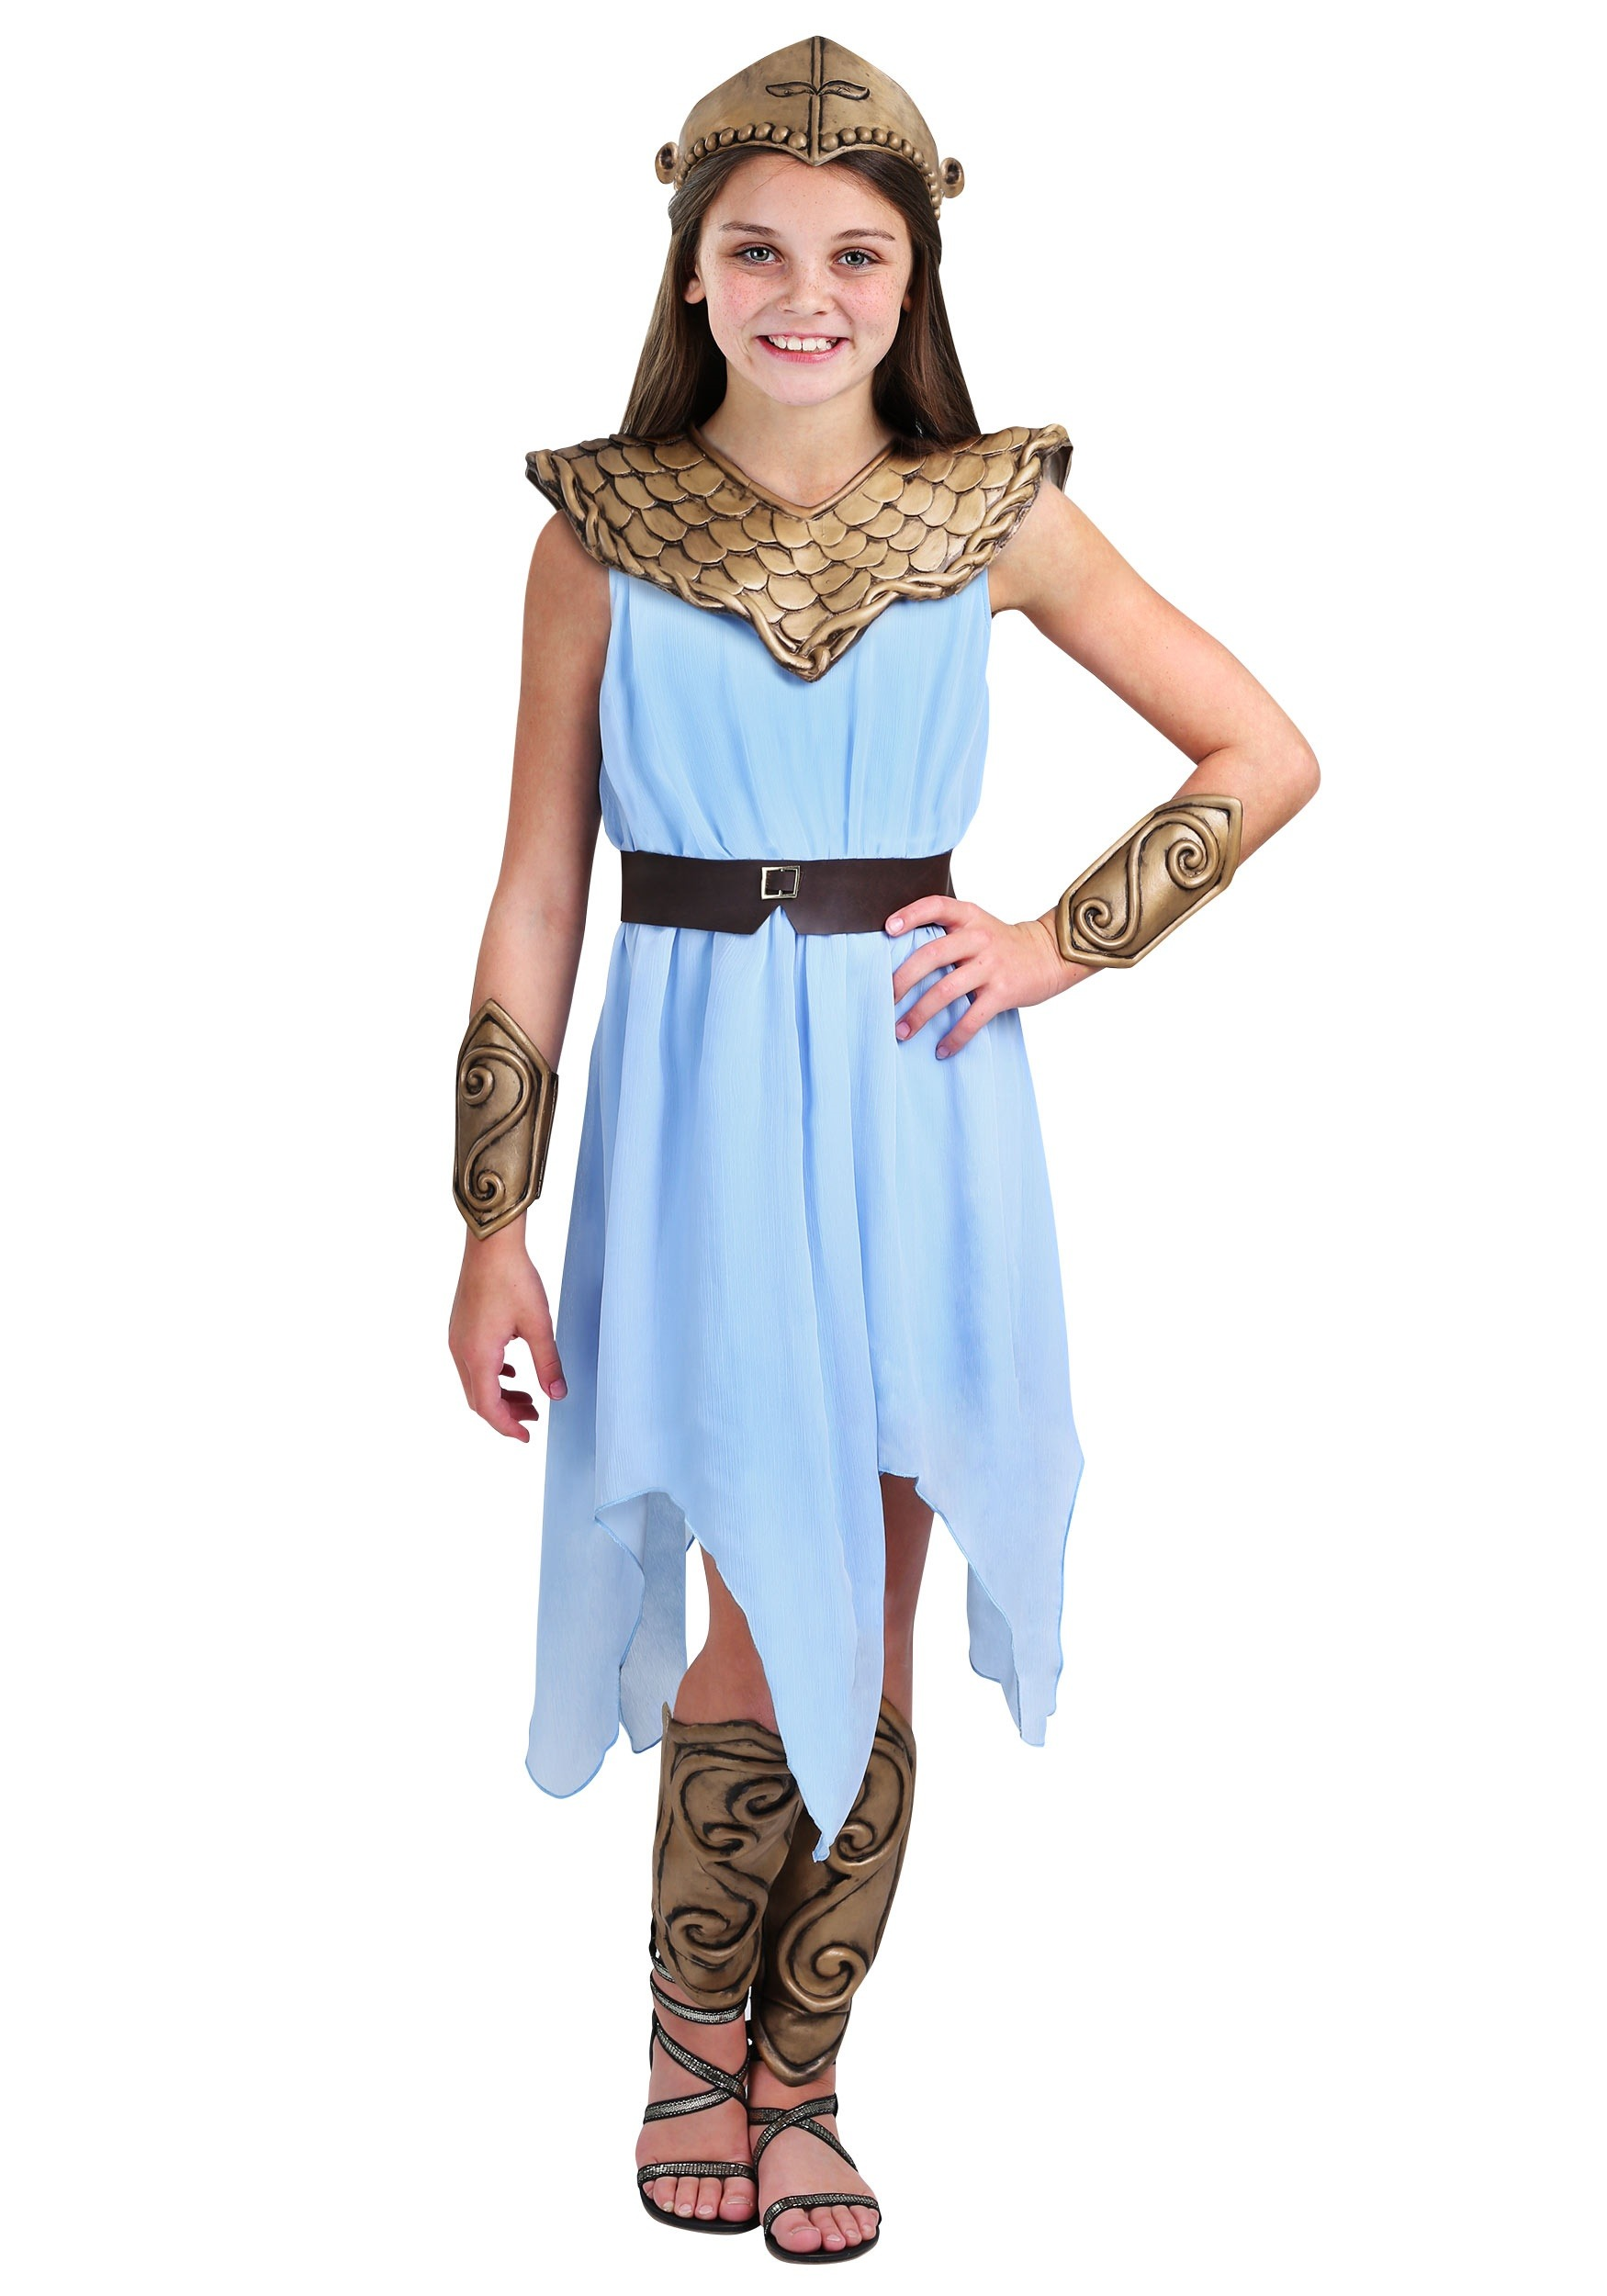 Athena Costume for Girls 89c2cc292583